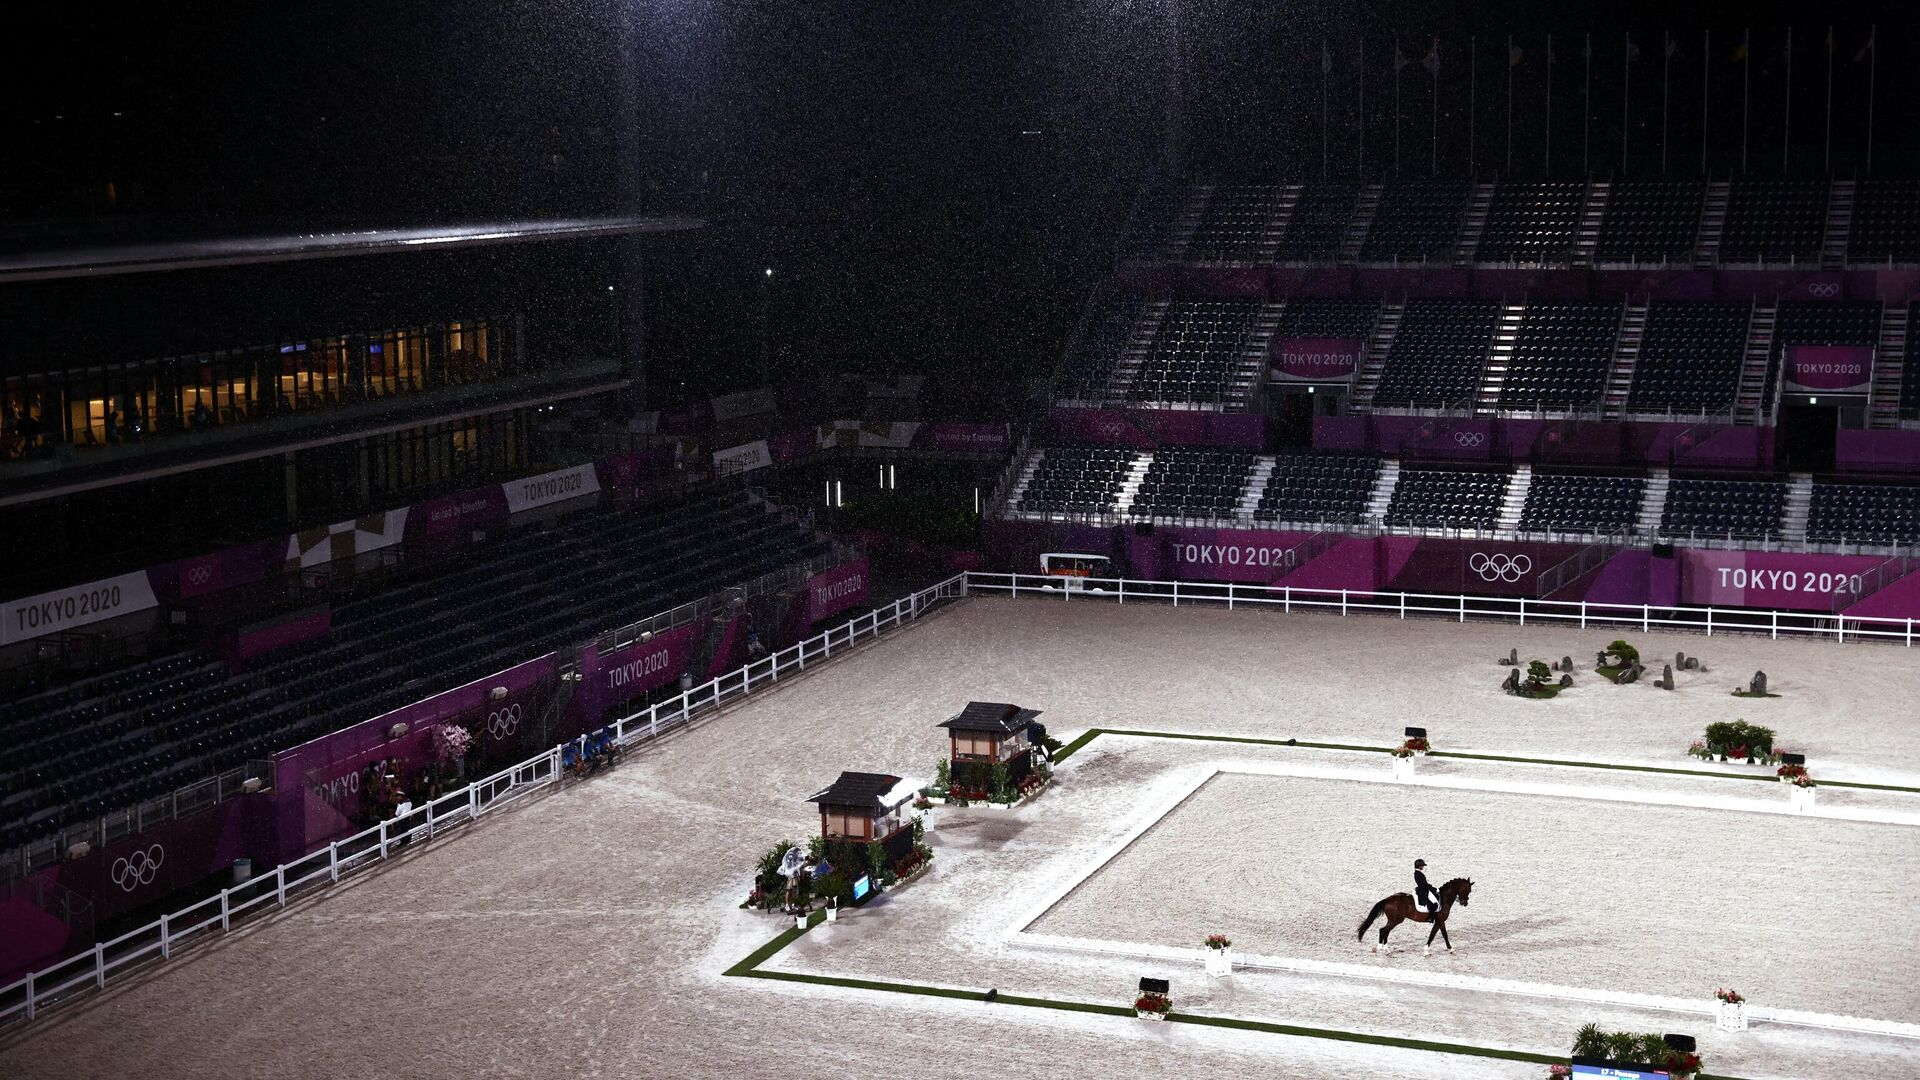 Russia's Aleksandra Maksakova rides Bojengels under the rain in the dressage individual grand prix group C during the equestrian competition of the Tokyo 2020 Olympic Games at the Equestrian Park in Tokyo on July 24, 2021. (Photo by Behrouz MEHRI / AFP) - РИА Новости, 1920, 25.07.2021